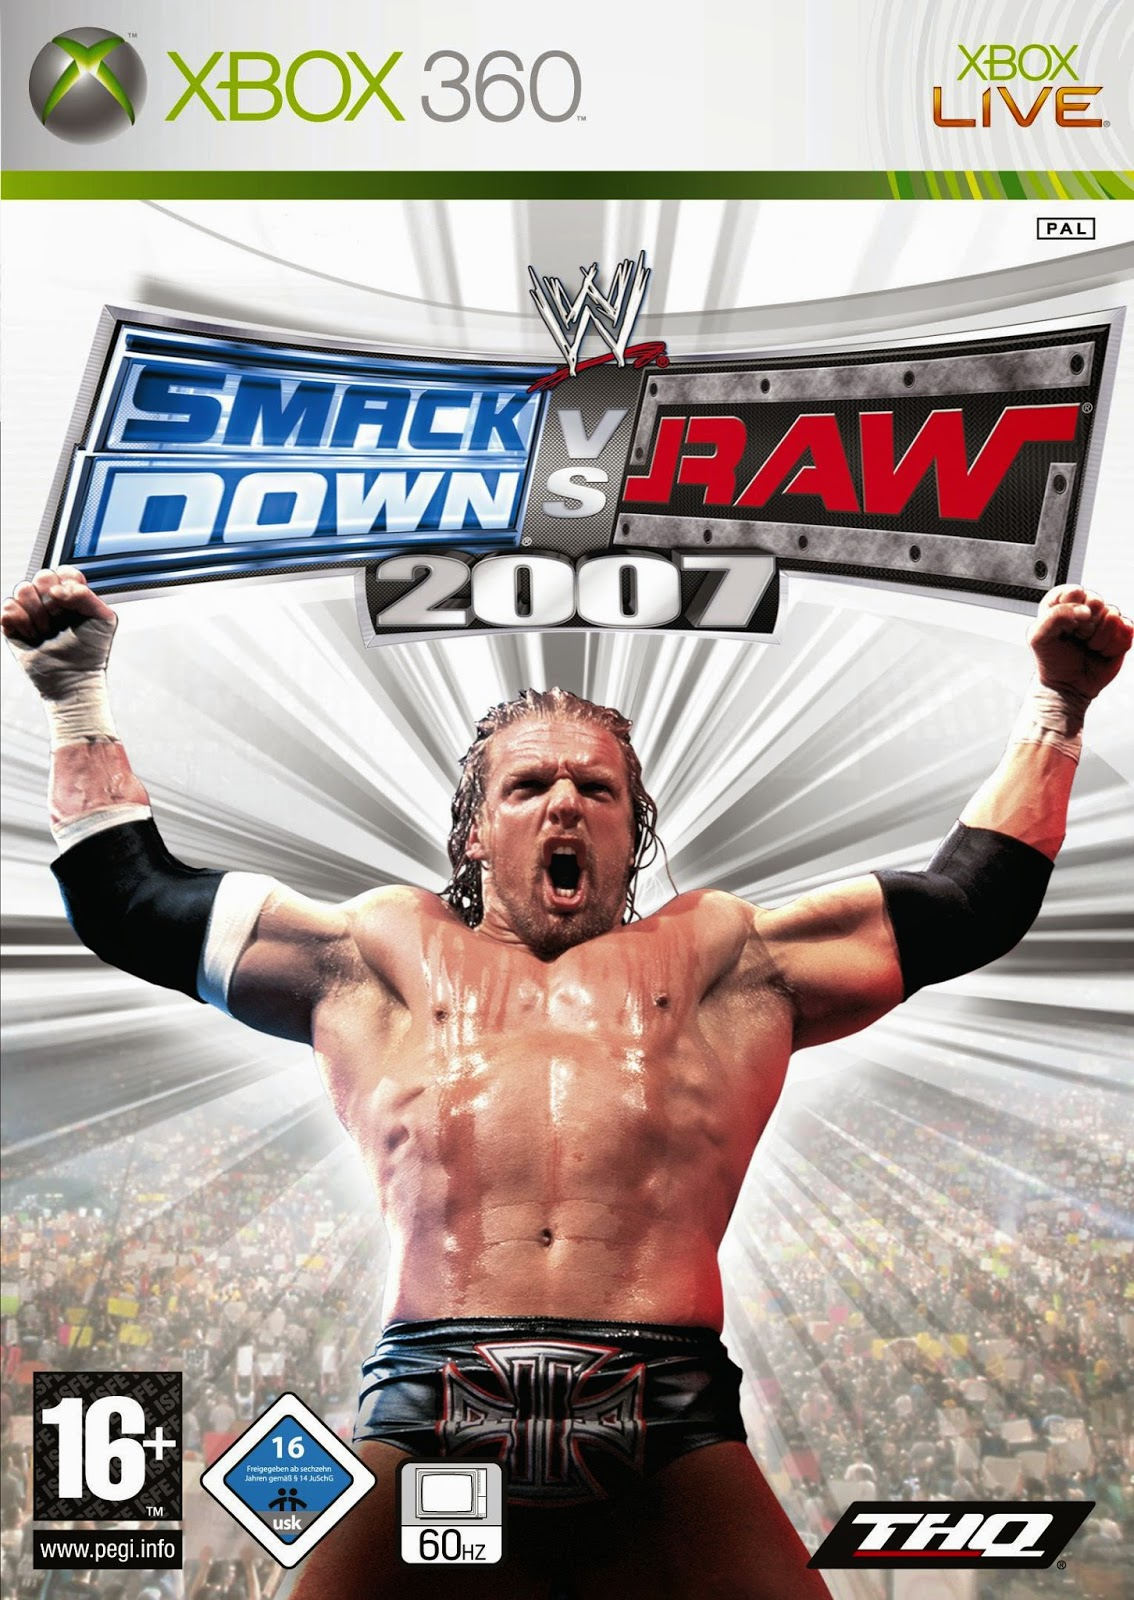 Download Wwe Smackdown Vs Raw In 1 Gb | Autos Post